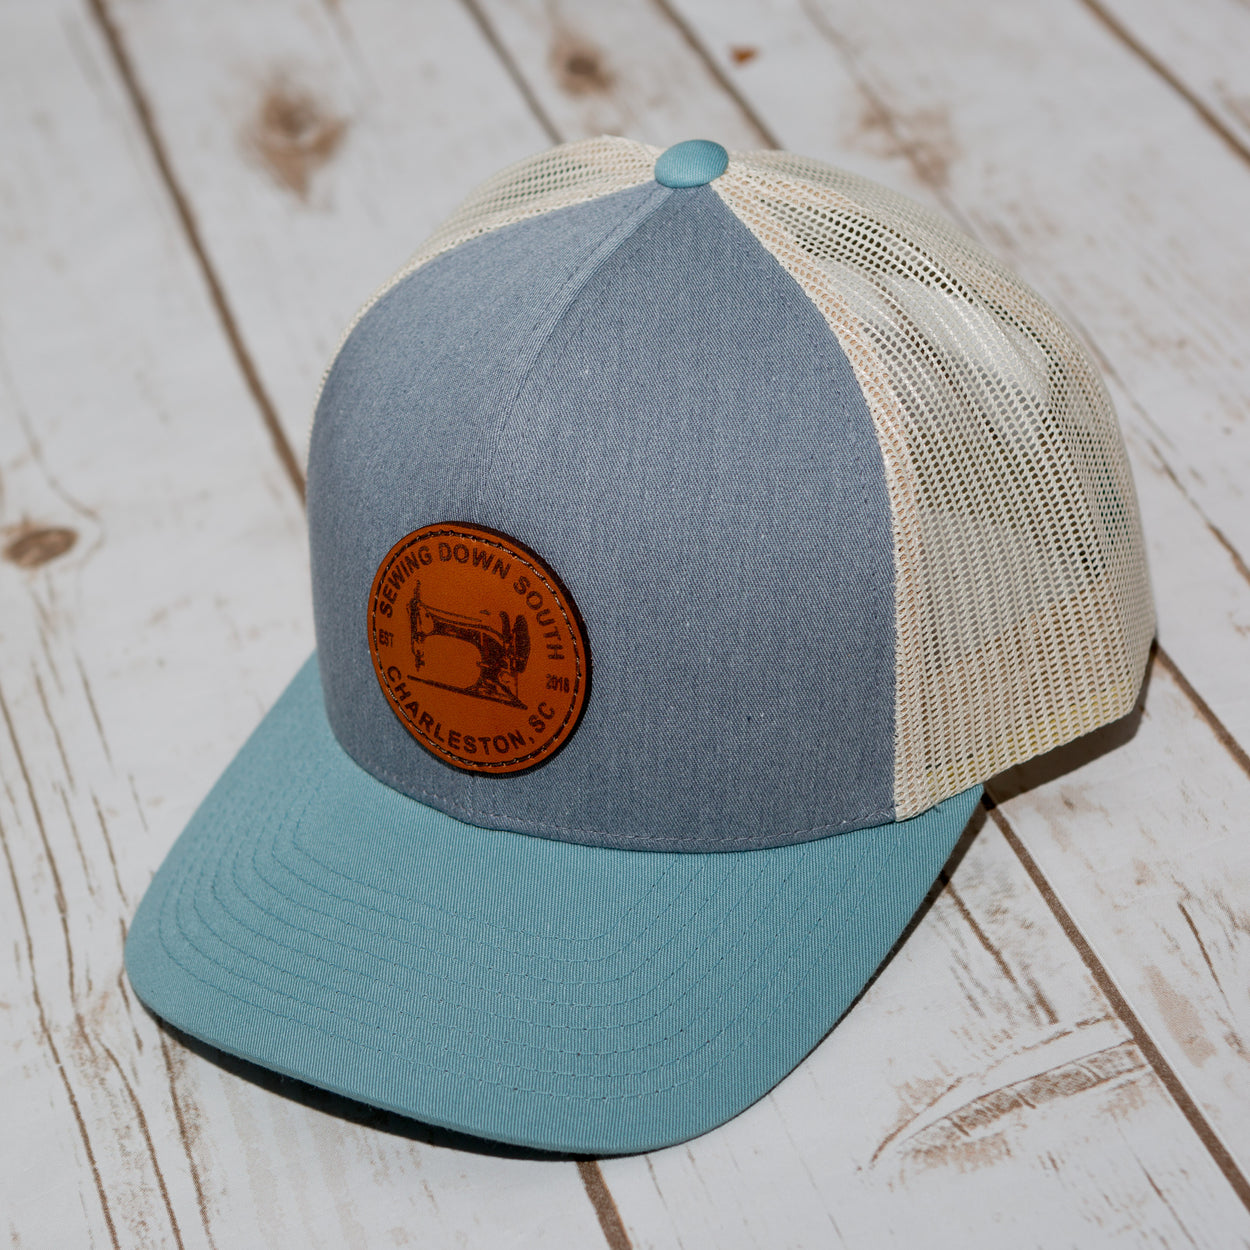 Sewing Down South Leather Patch Trucker, Grey